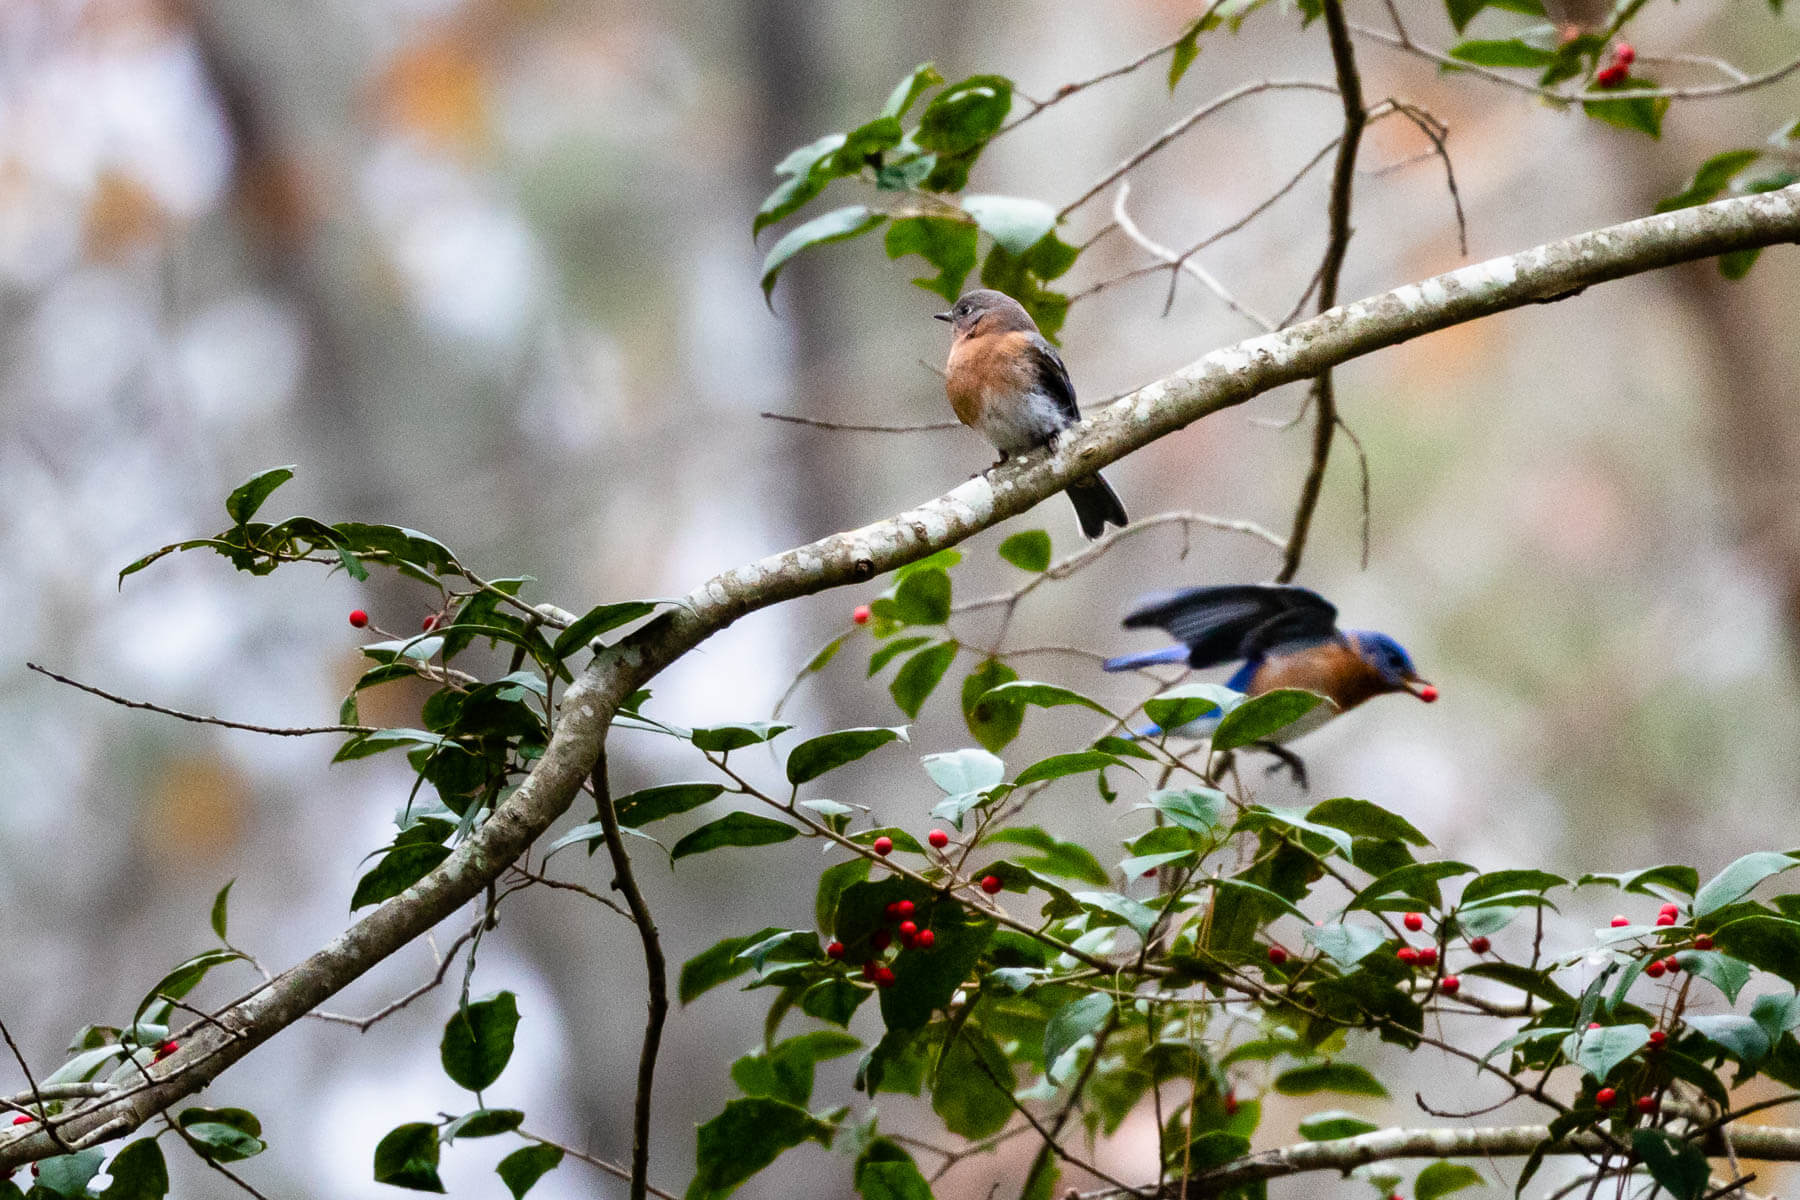 Eastern blue birds forage for berries in a tree.